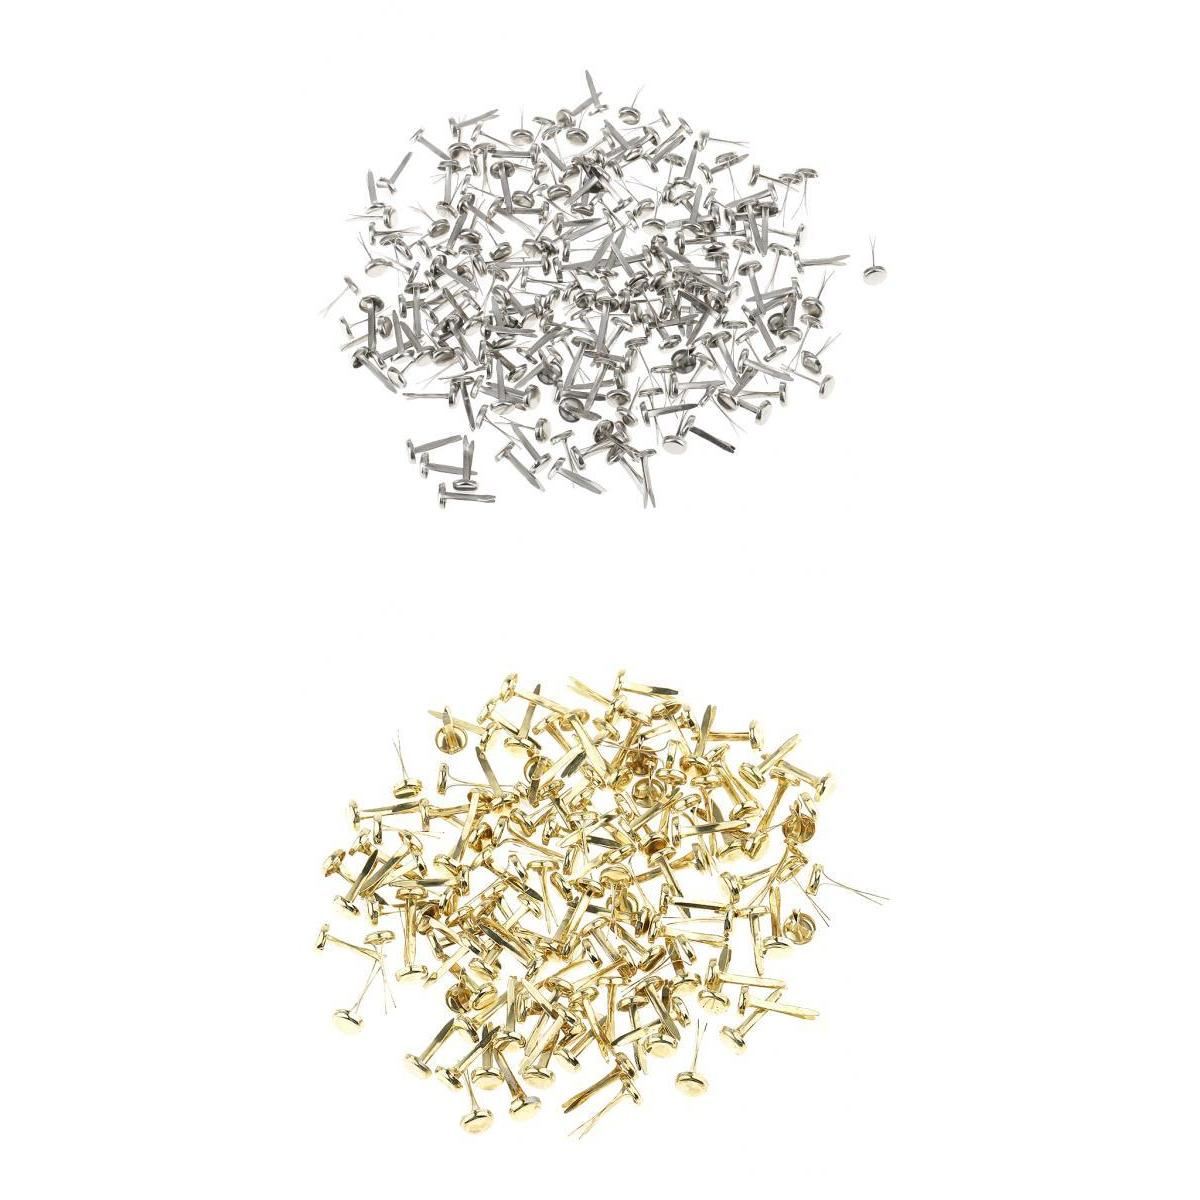 400 Pieces Metal Iron Brads Paper Fasteners for Scrapbooking Craft Gold Silver ...